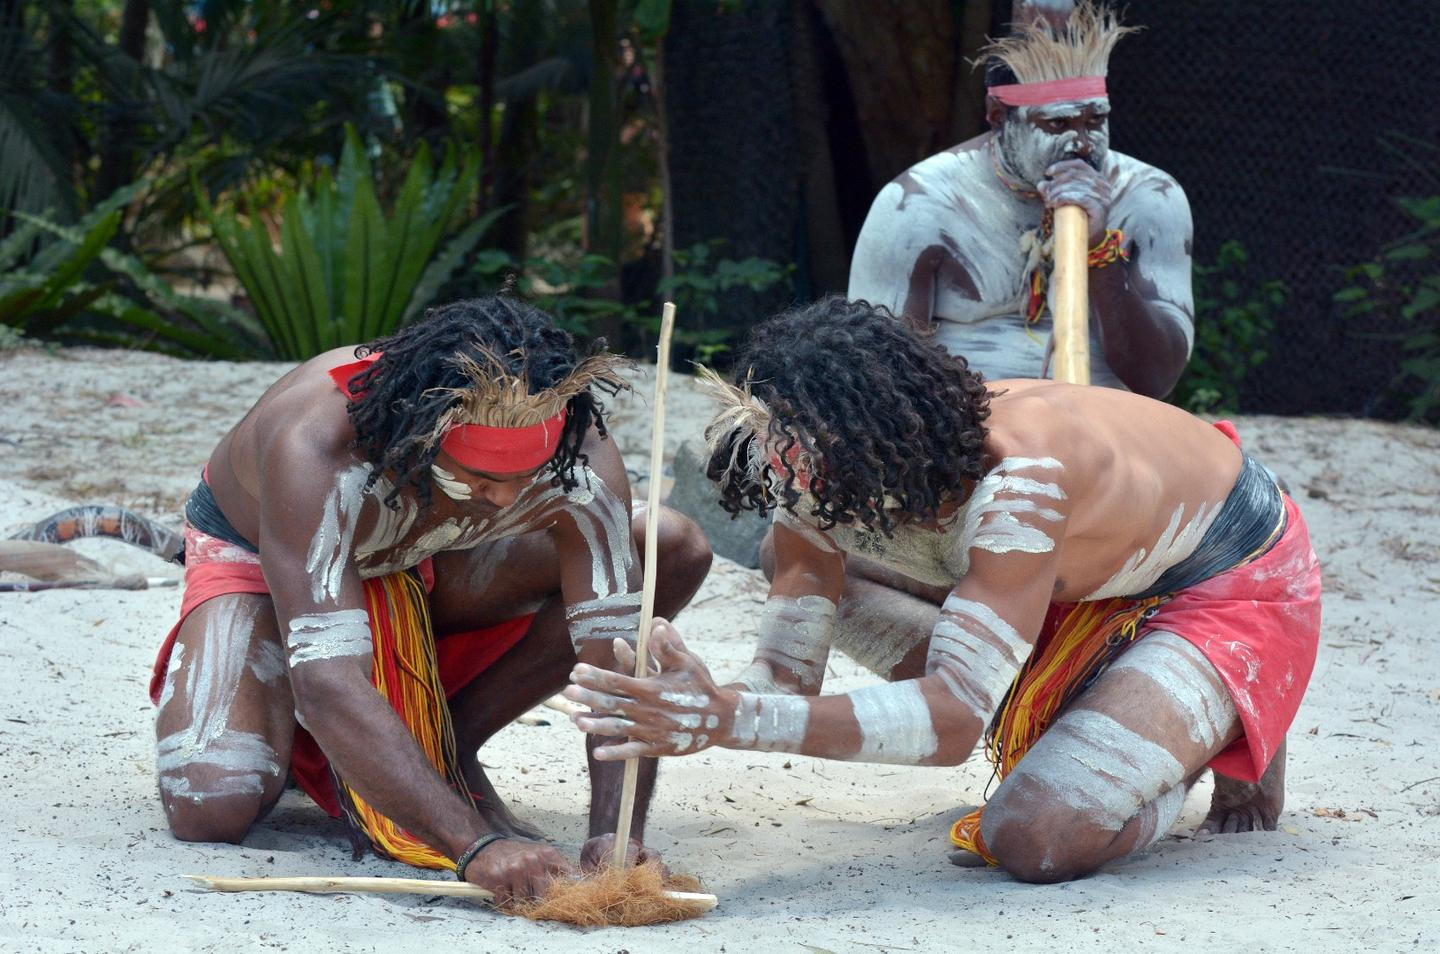 A bold new study suggests that Aboriginal Australians have lived on the southern continent for as long as 120,000 years – almost twice as long as previously thought